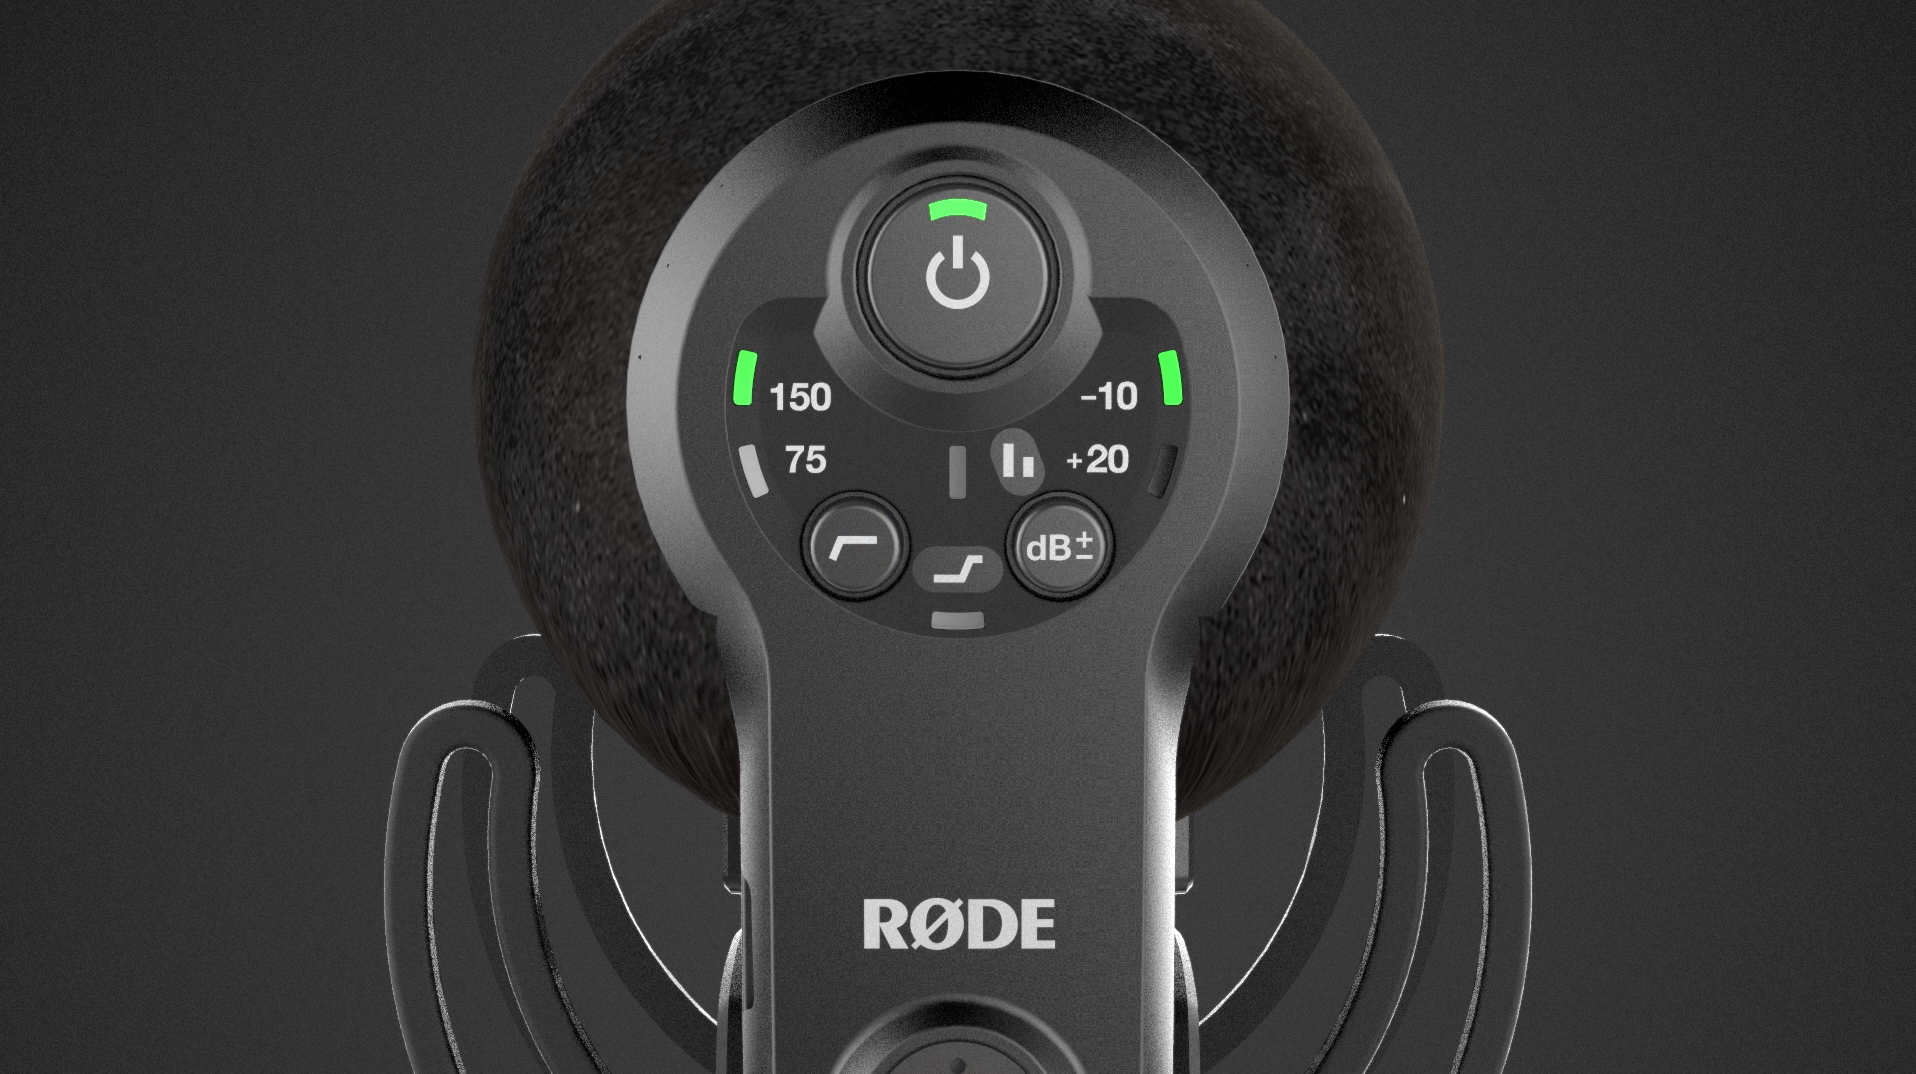 Rode VideoMic Pro+ Settings